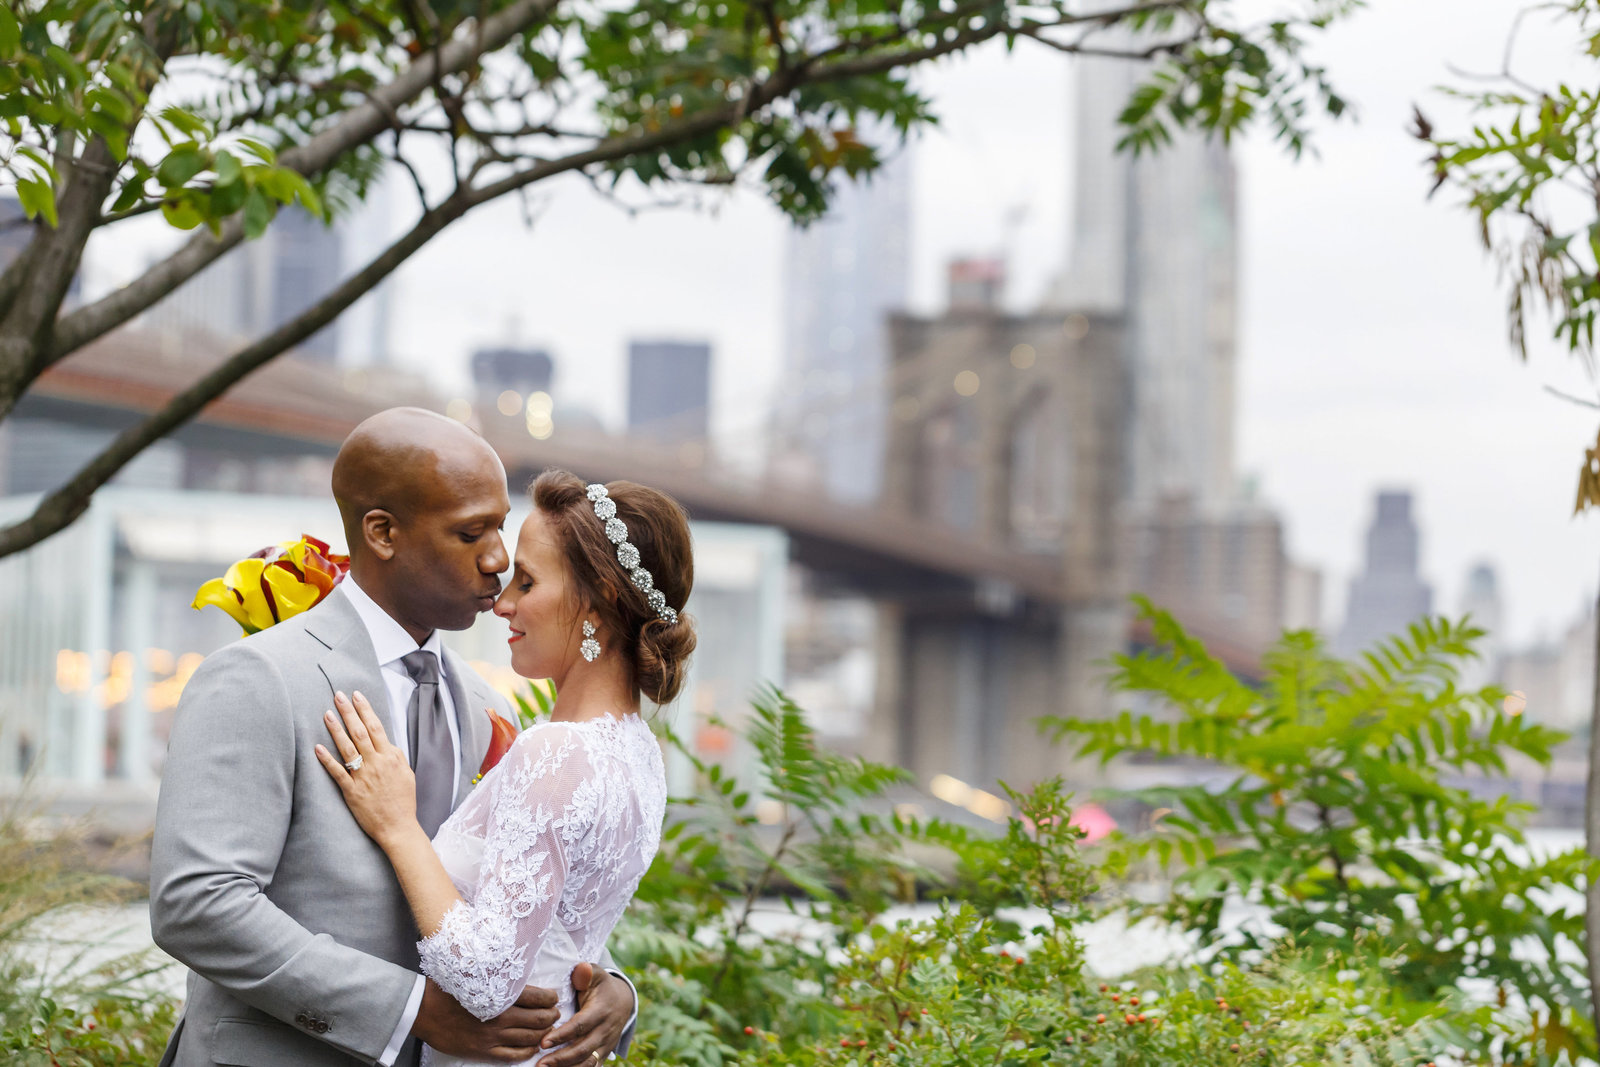 AmyAnaiz__Intimate_Wedding_Dumbo_Deity_Brooklyn_New_York_013